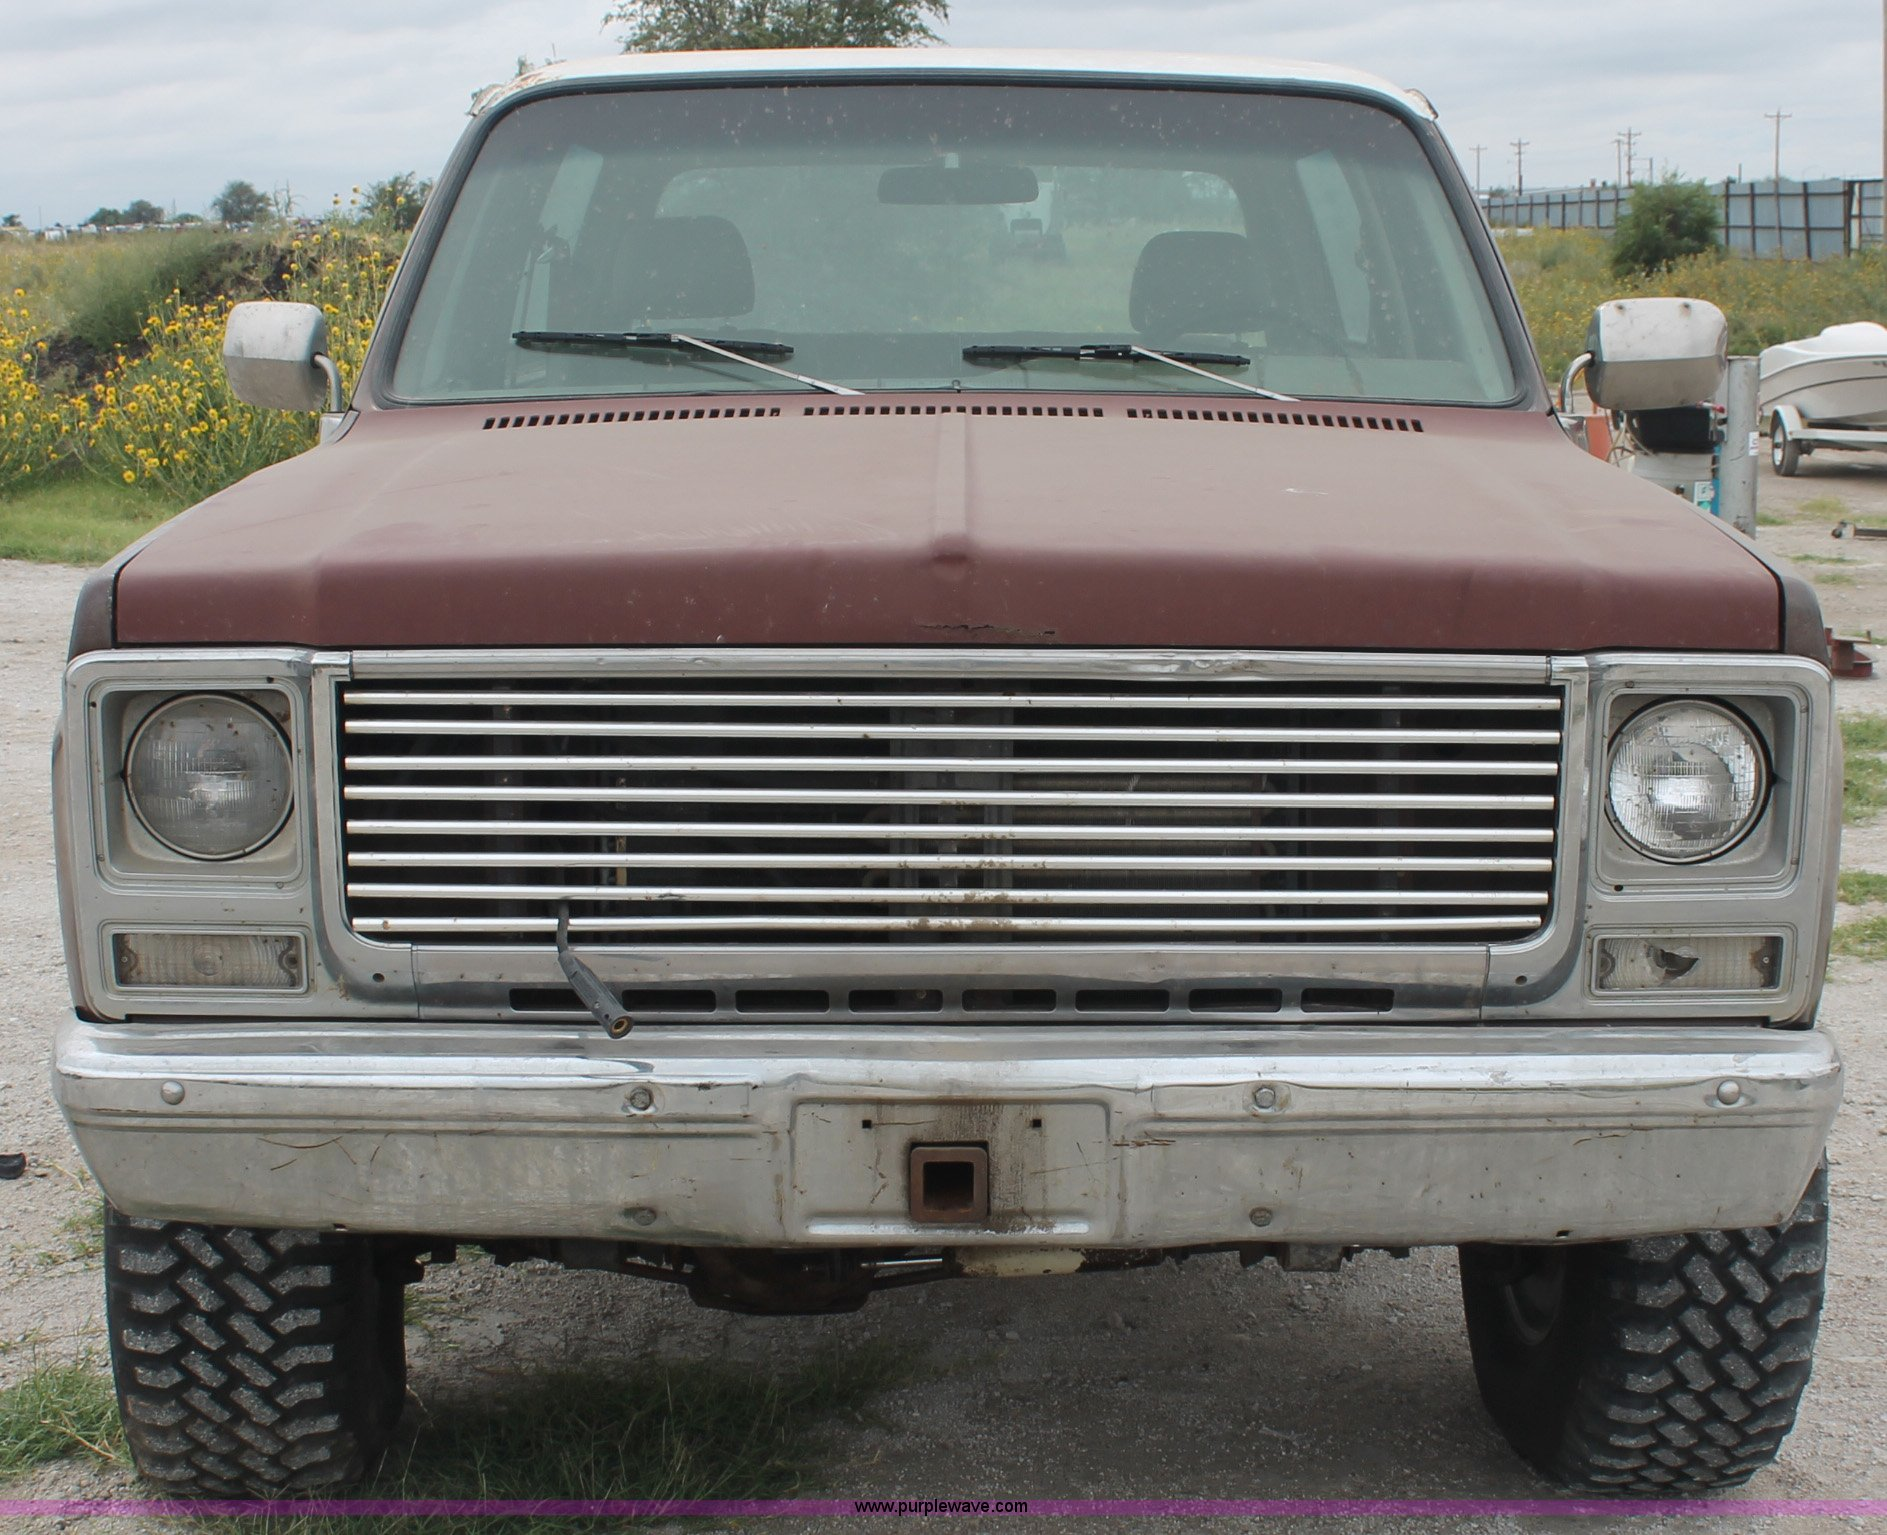 1979 Chevrolet K5 Blazer Suv Item C2848 Sold